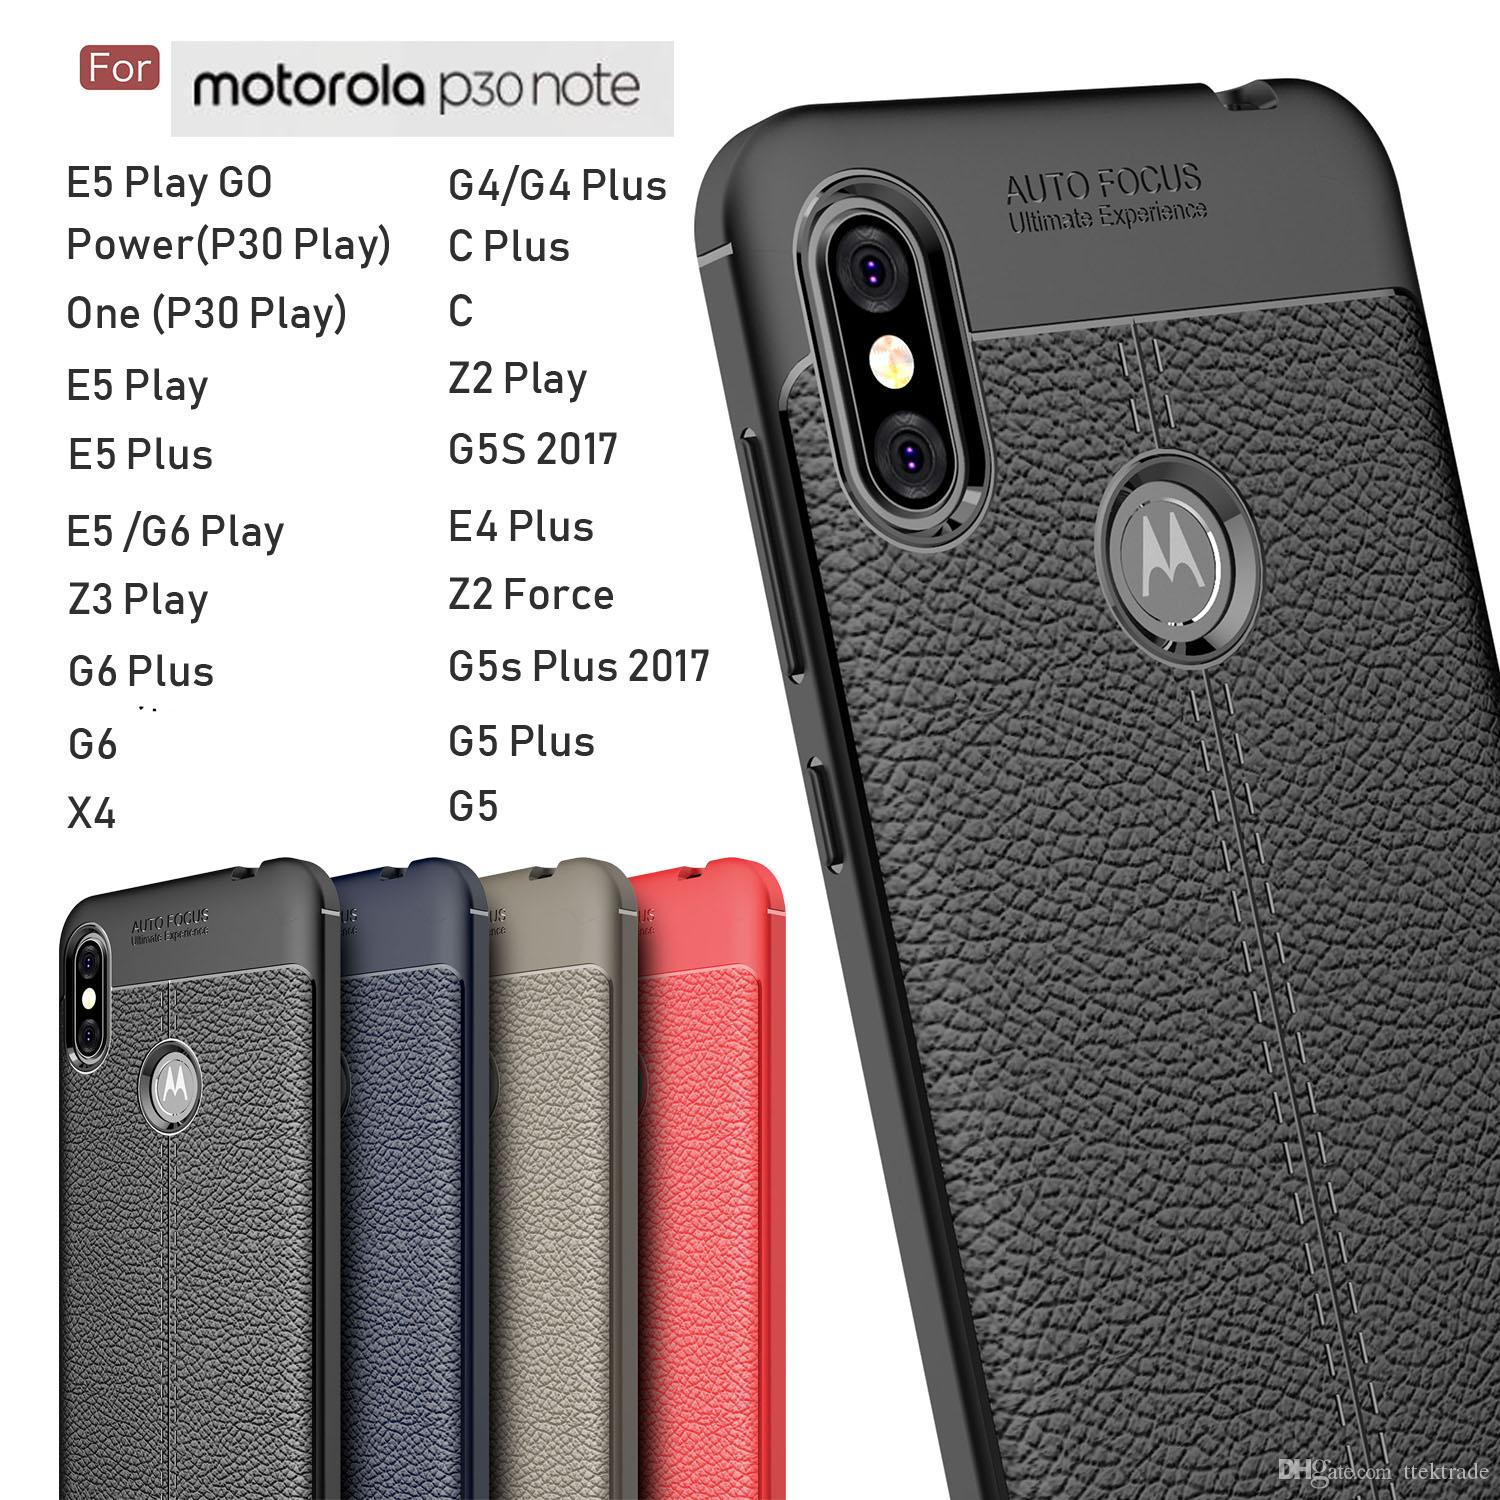 online retailer f6e04 3c0b5 Luxury Leather Skin Case Soft TPU 360 Shockproof Protective For Motorola  P30 Note Power One P30 Play E5 Play Go Slim Ultra Thin Cover Coque